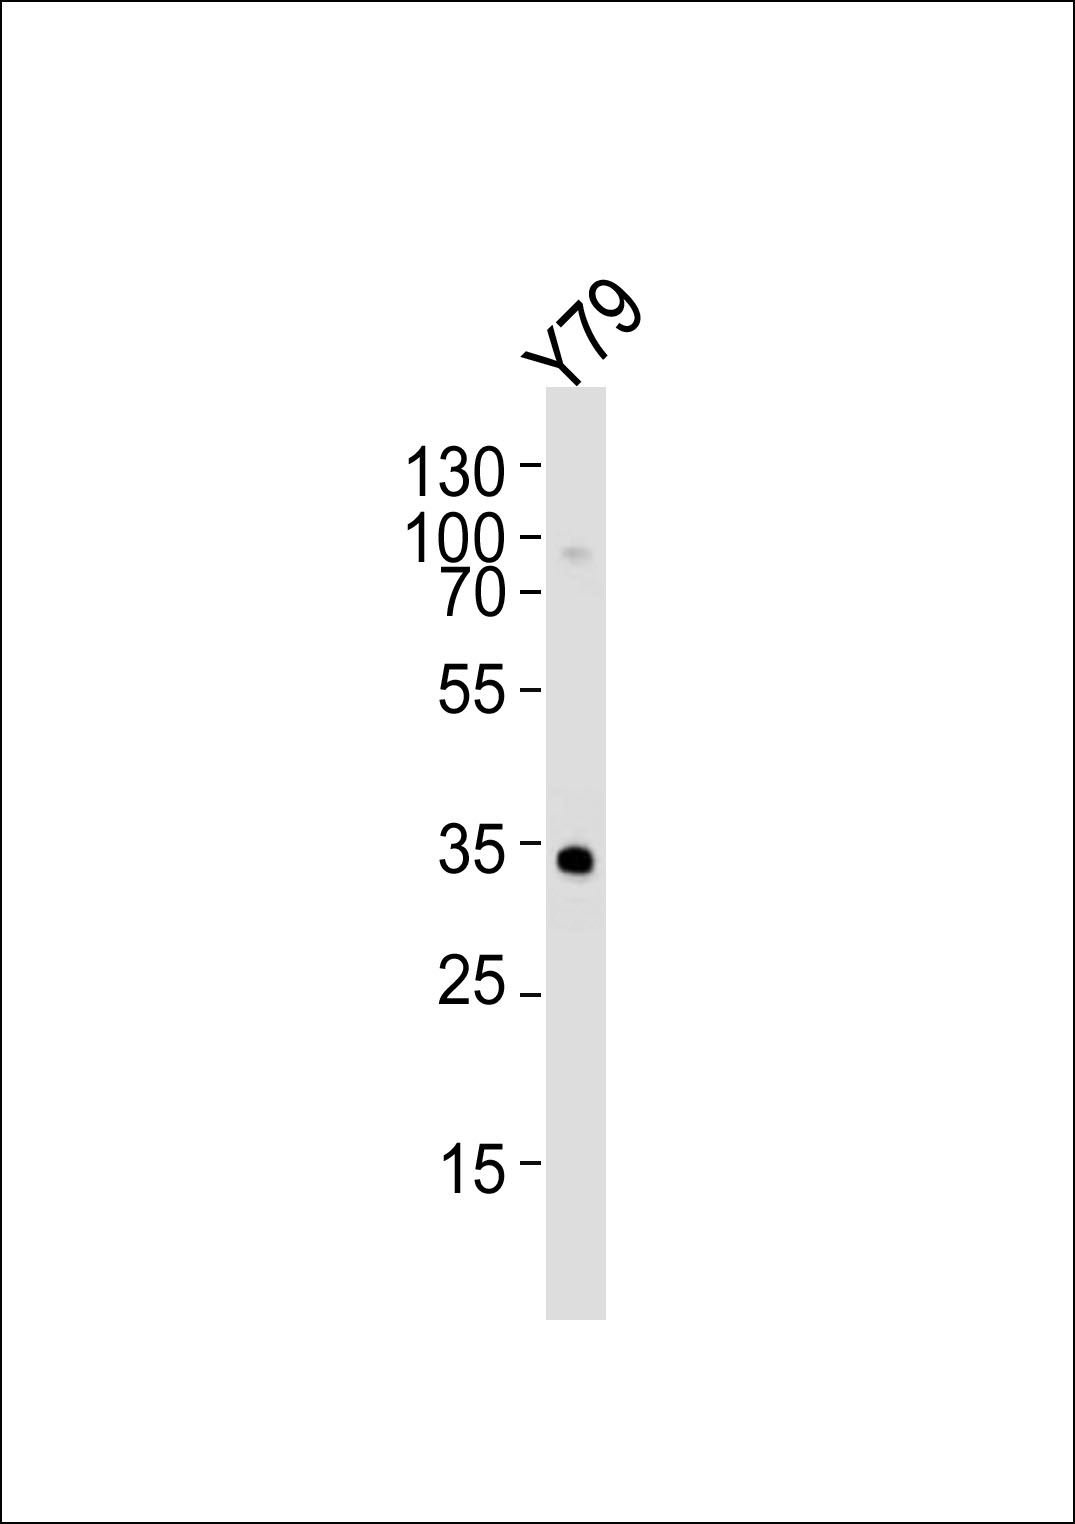 Lane 1: Y79 Cell lysates; probed with OTX2 (3C2) Monoclonal Antibody, unconjugated (bsm-51276M) at 1:1000 overnight at 4\u00b0C followed by a conjugated secondary antibody for 60 minutes at 37\u00b0C.